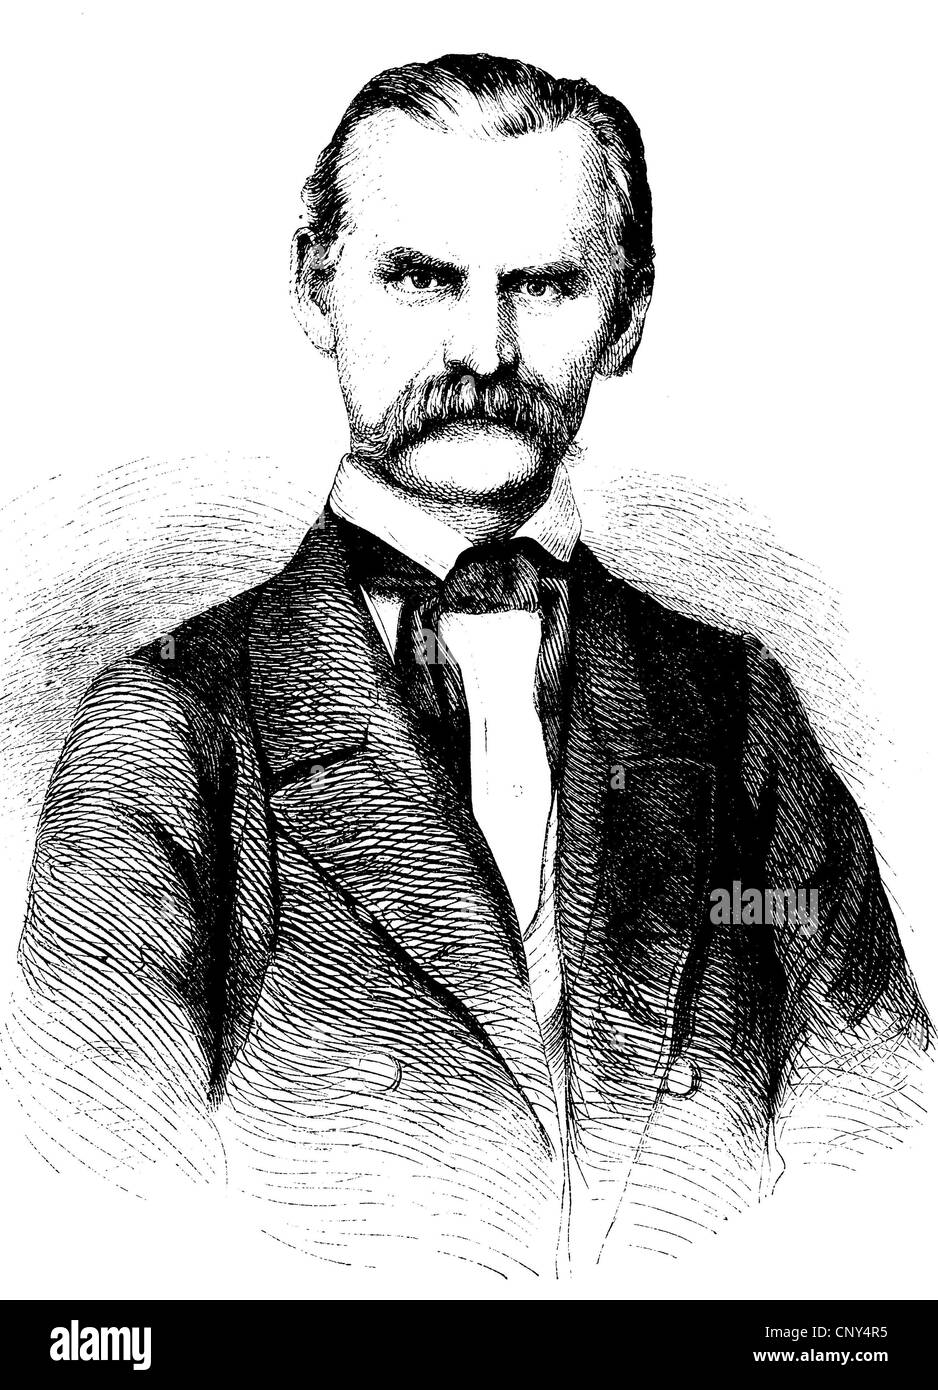 Friedrich Oetker, 1809 - 1881, a German liberal politician and journalist, historical wood engraving, circa 1888 - Stock Image